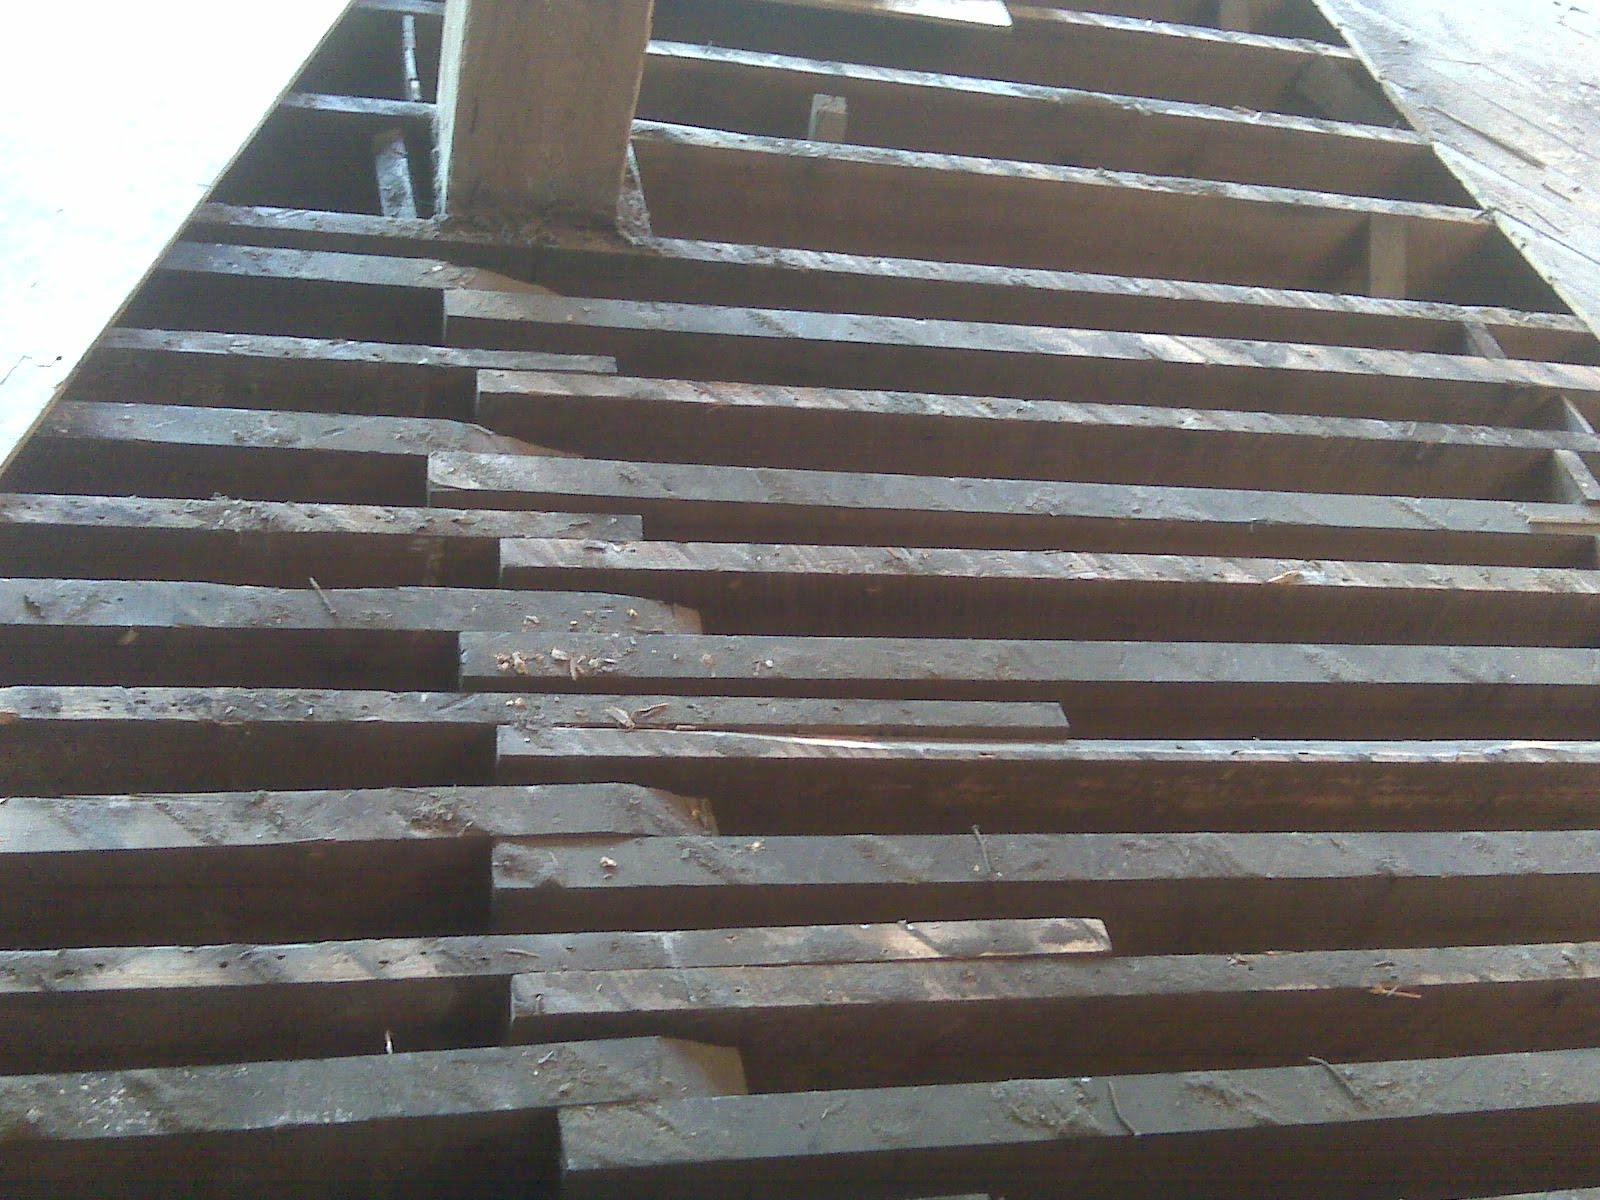 Sawtooth building nashville floor joist for Floor joist construction